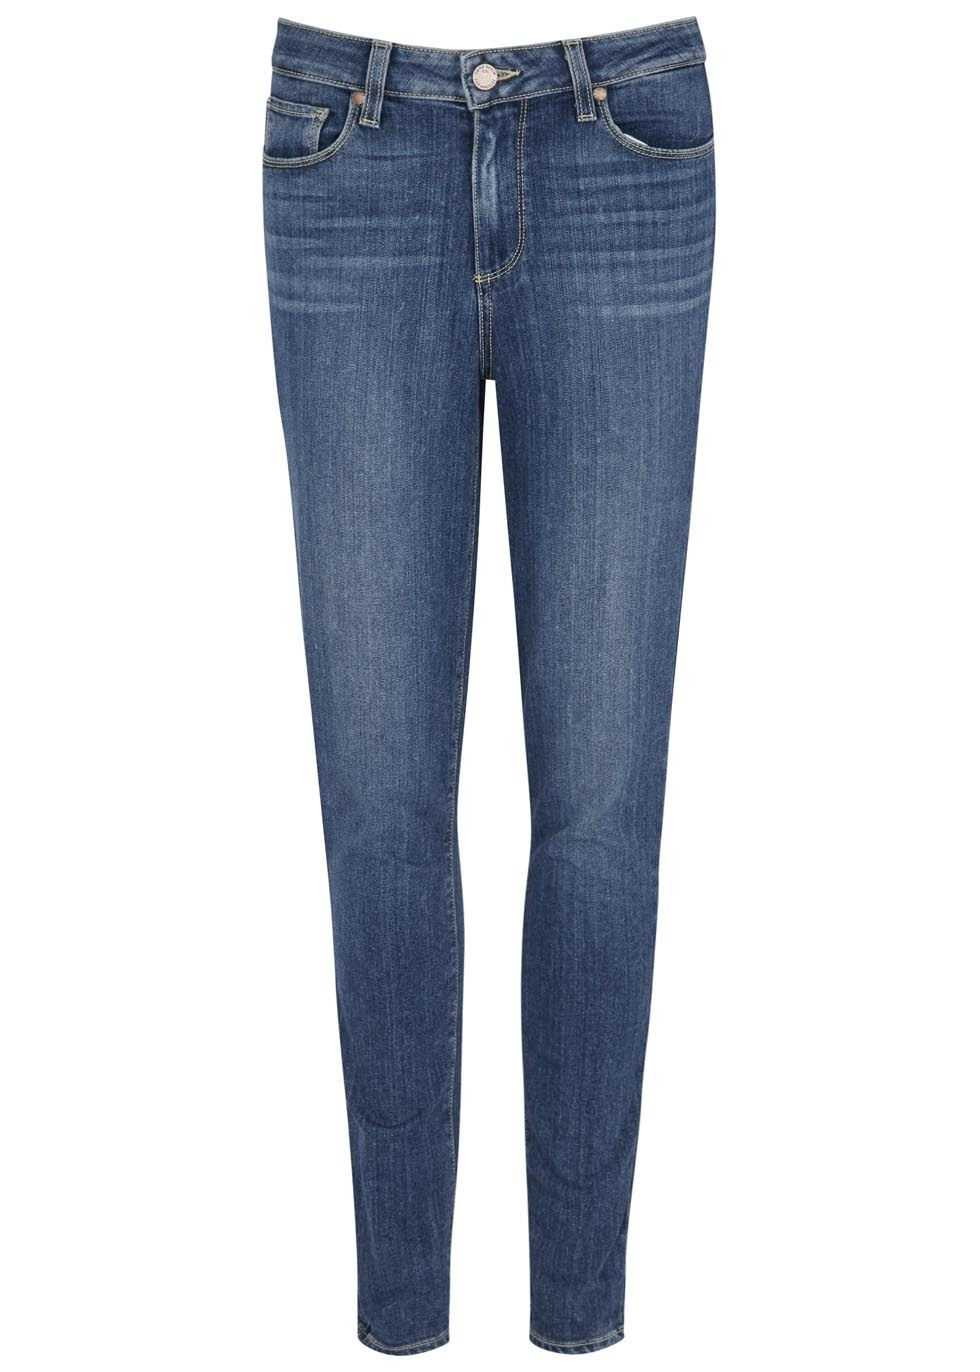 Hoxton Cropped Skinny Jeans - style: skinny leg; length: standard; pattern: plain; pocket detail: traditional 5 pocket; waist: mid/regular rise; predominant colour: navy; occasions: casual; fibres: cotton - stretch; jeans detail: whiskering; texture group: denim; pattern type: fabric; season: s/s 2016